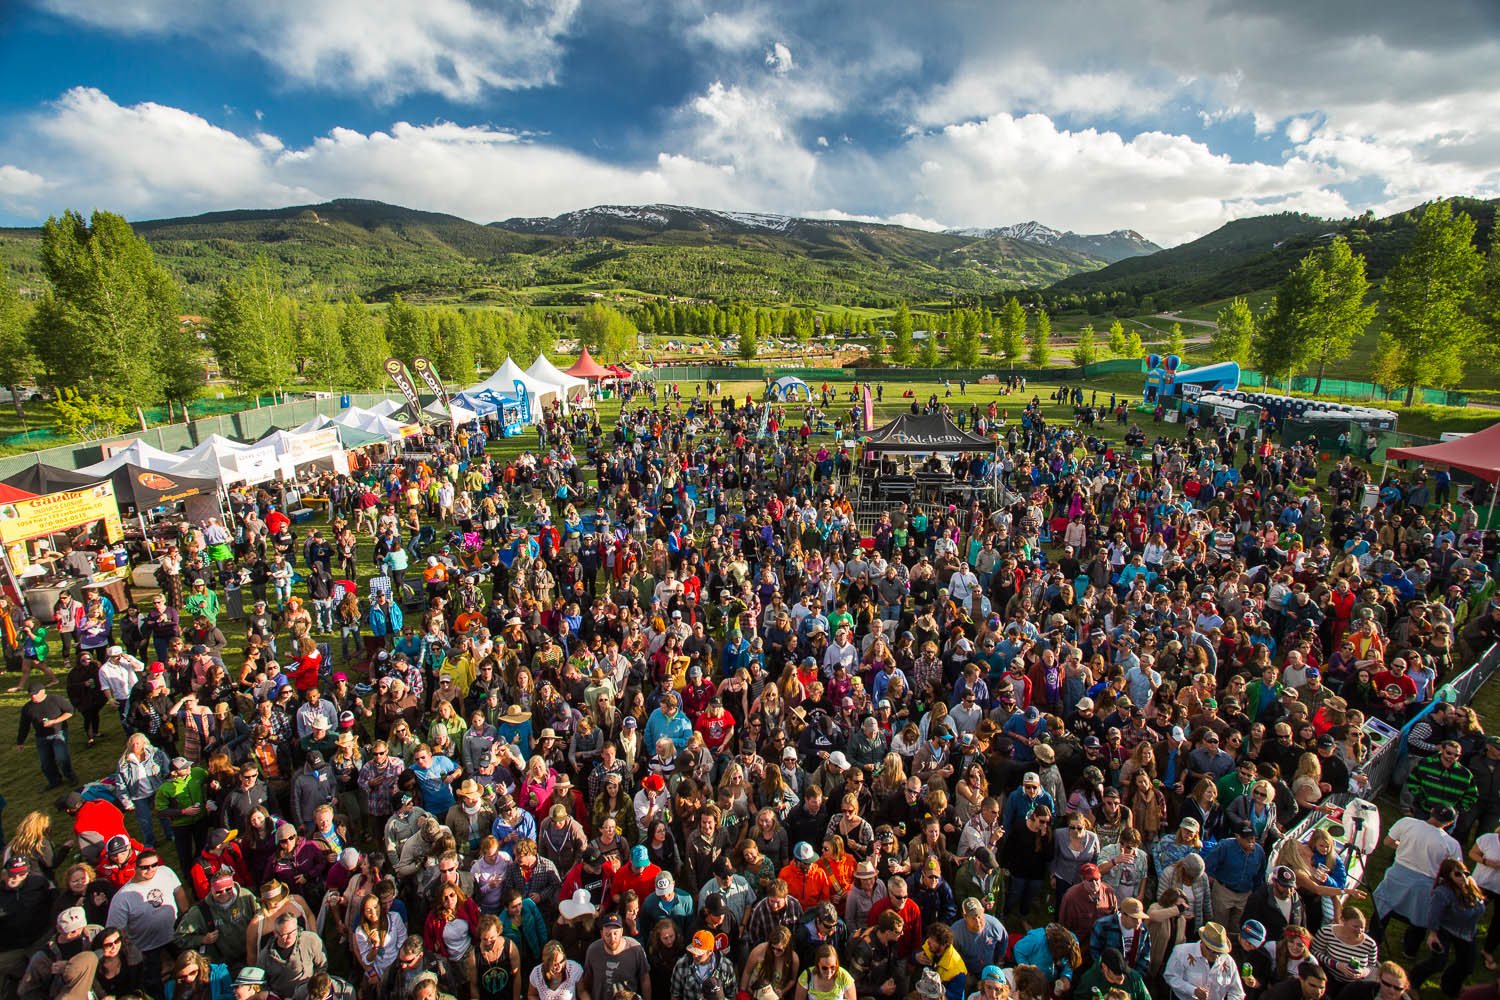 festival-crowd-snowmass-mammoth-festival